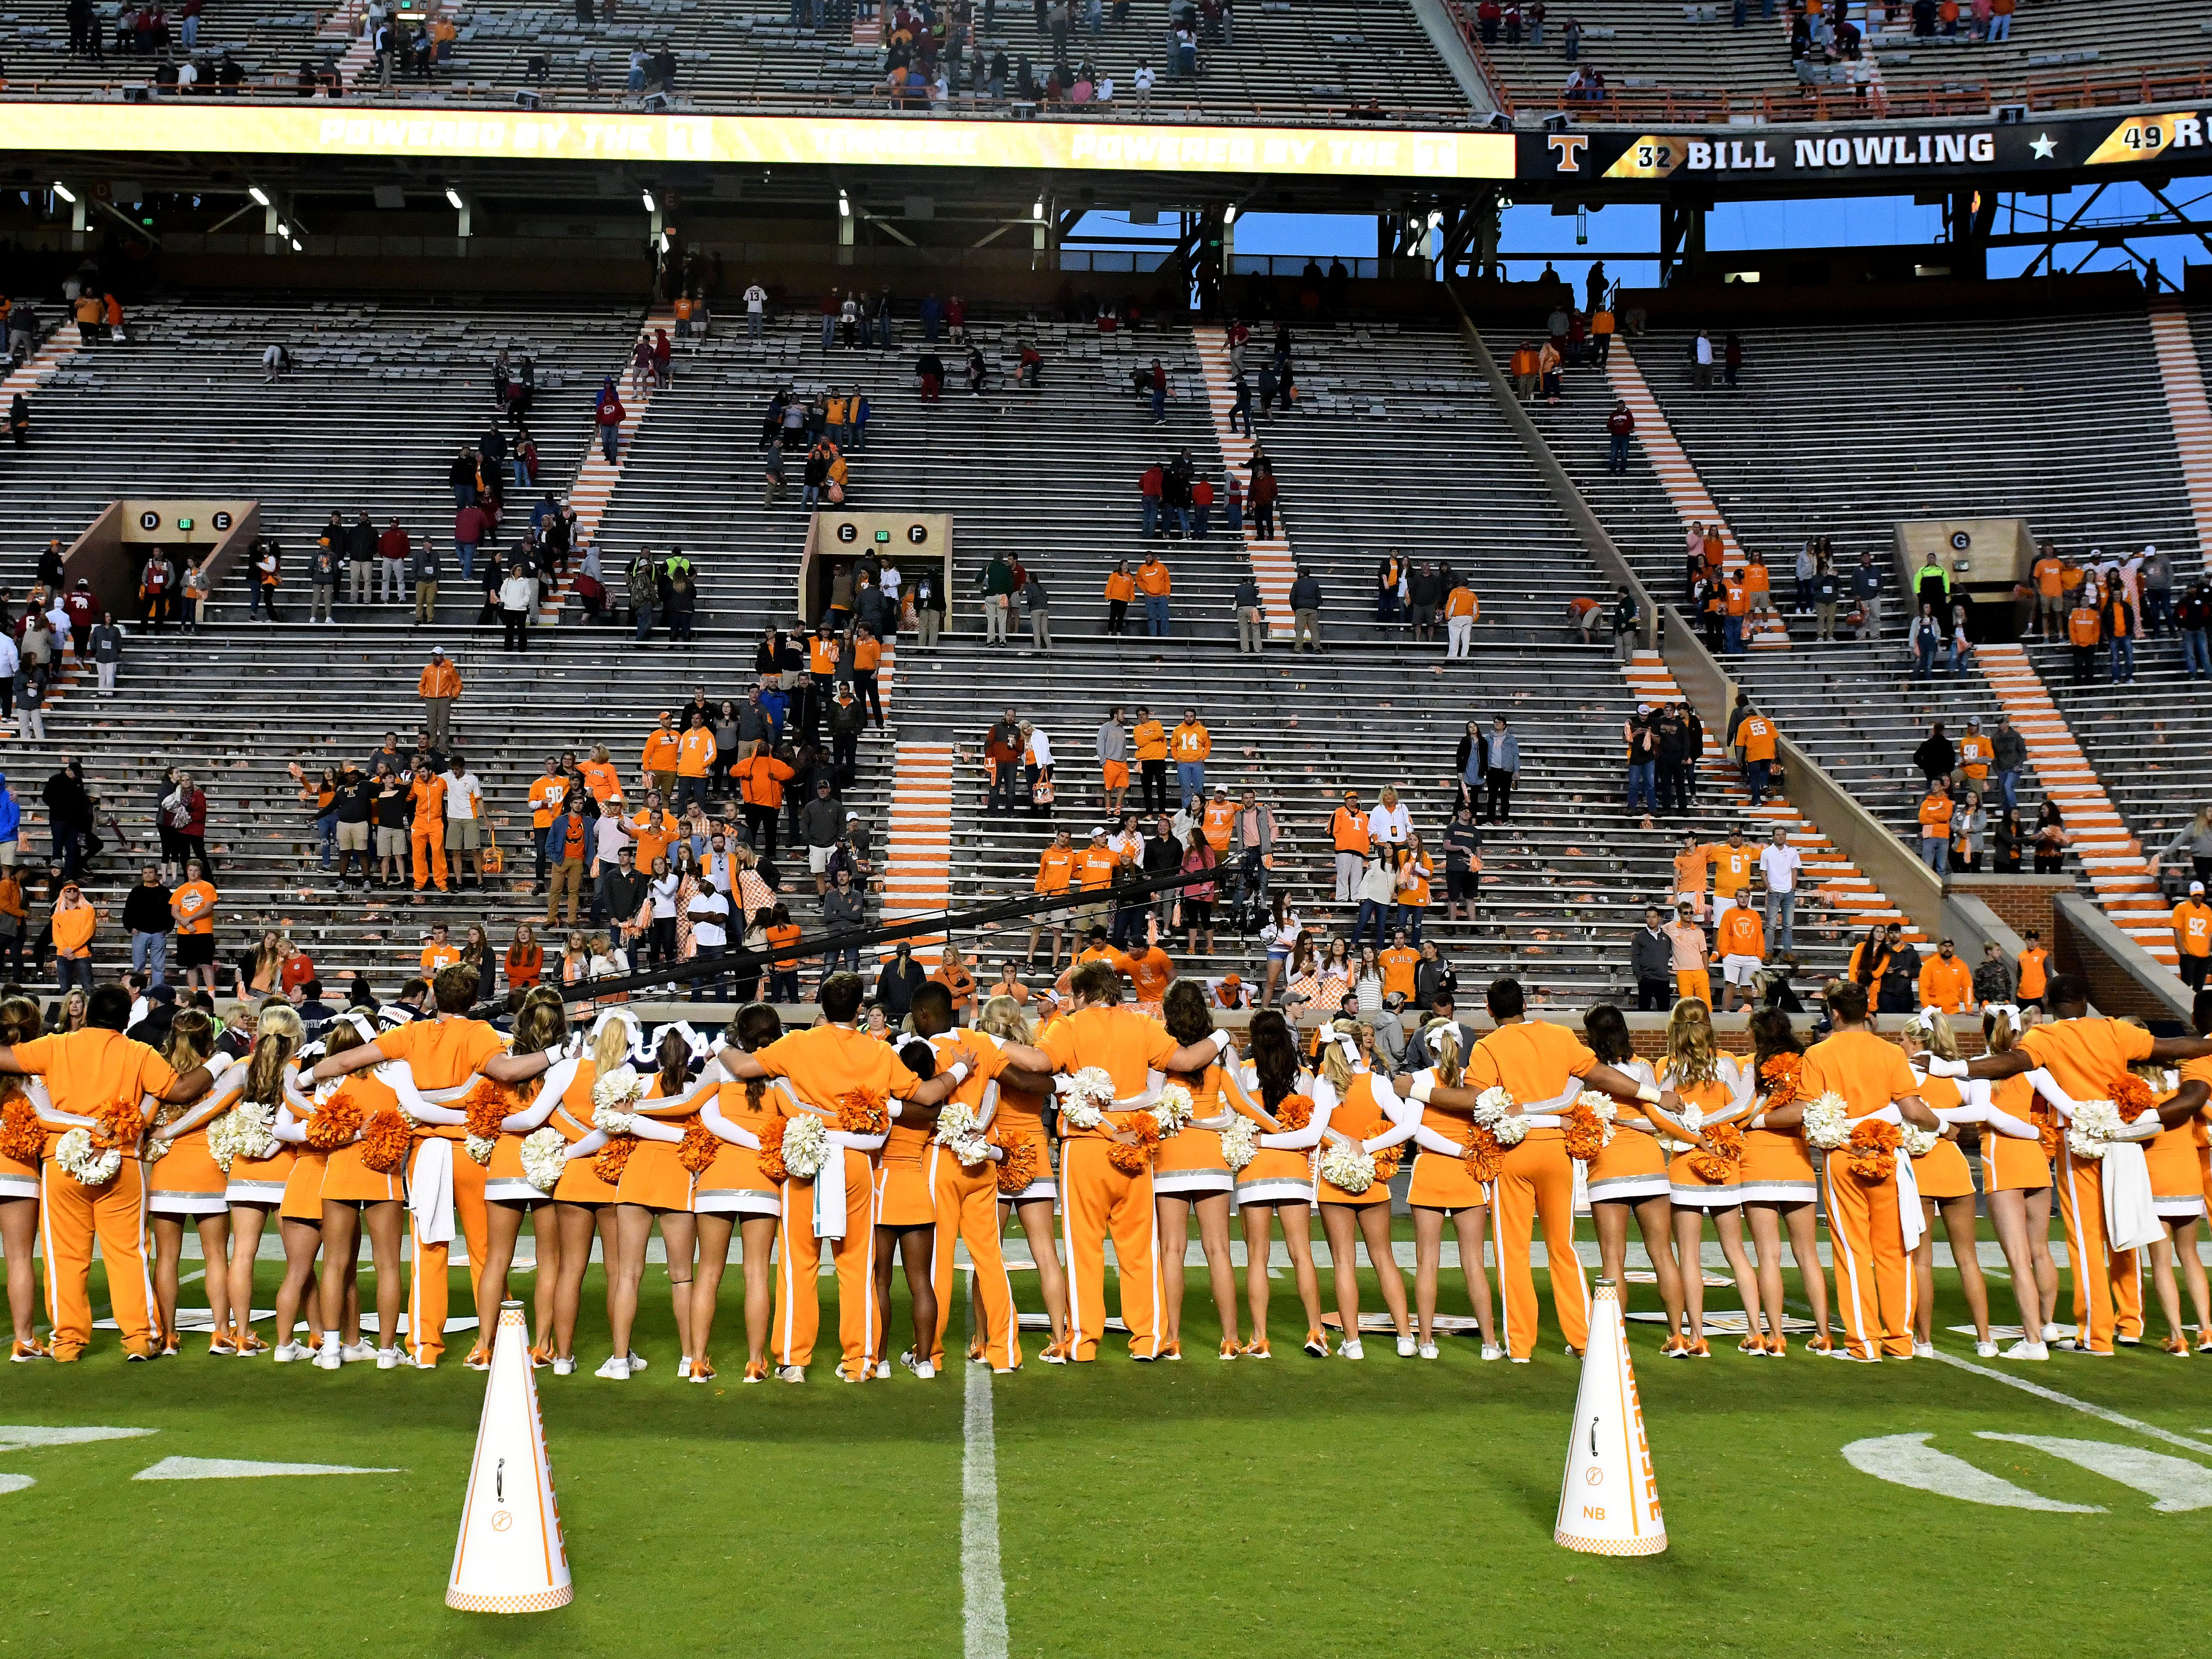 The Tennessee cheer squad signs to the Tennessee Waltz to an almost empty stadium after Alabama won 58-21 Saturday, October 20, 2018 at Neyland Stadium in Knoxville, Tenn.